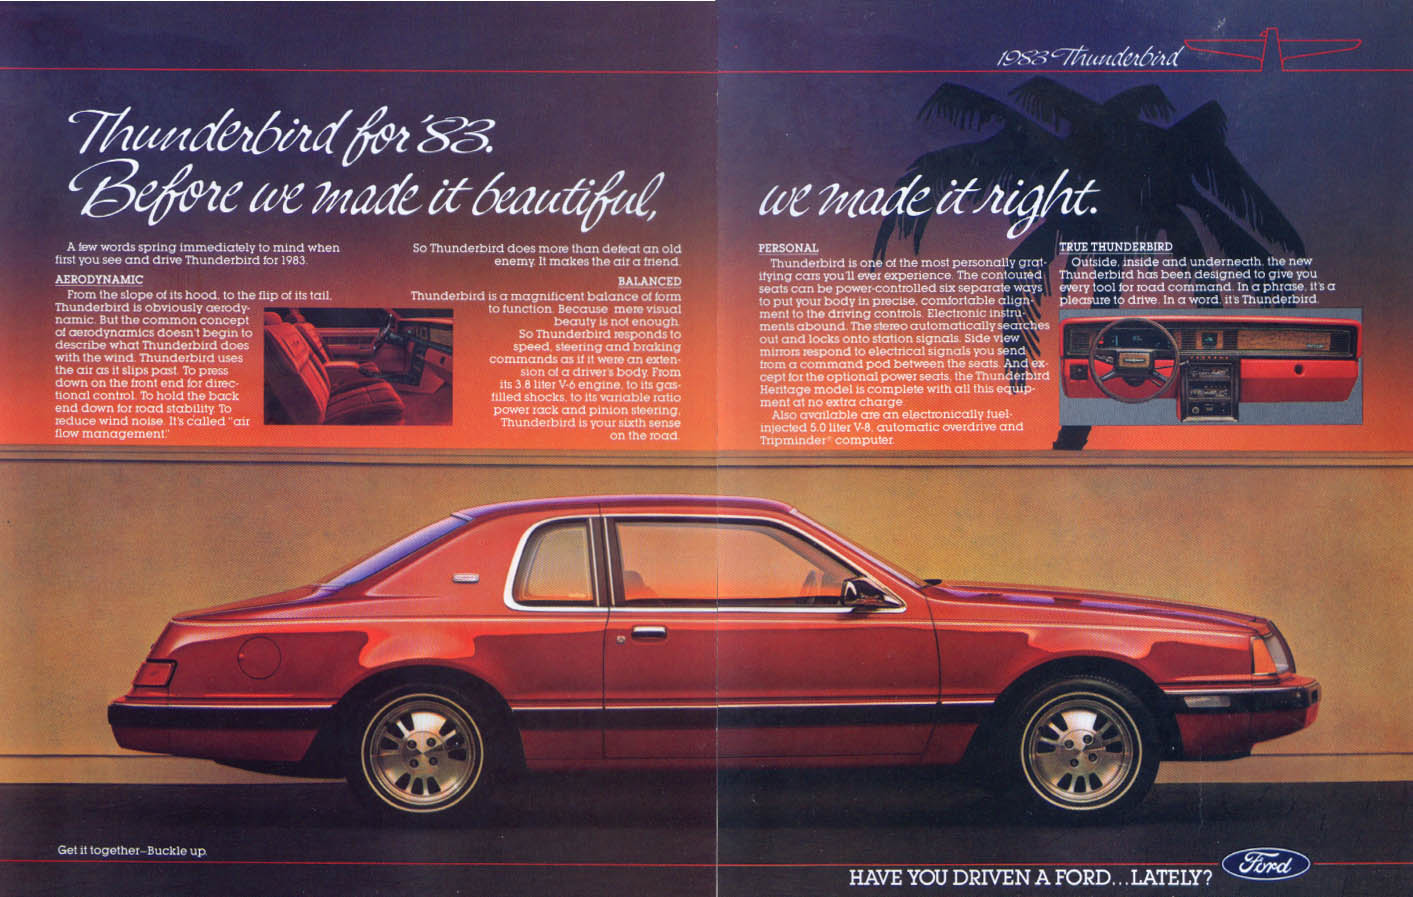 Ford Thunderbird before we made it beautiful ad 1983